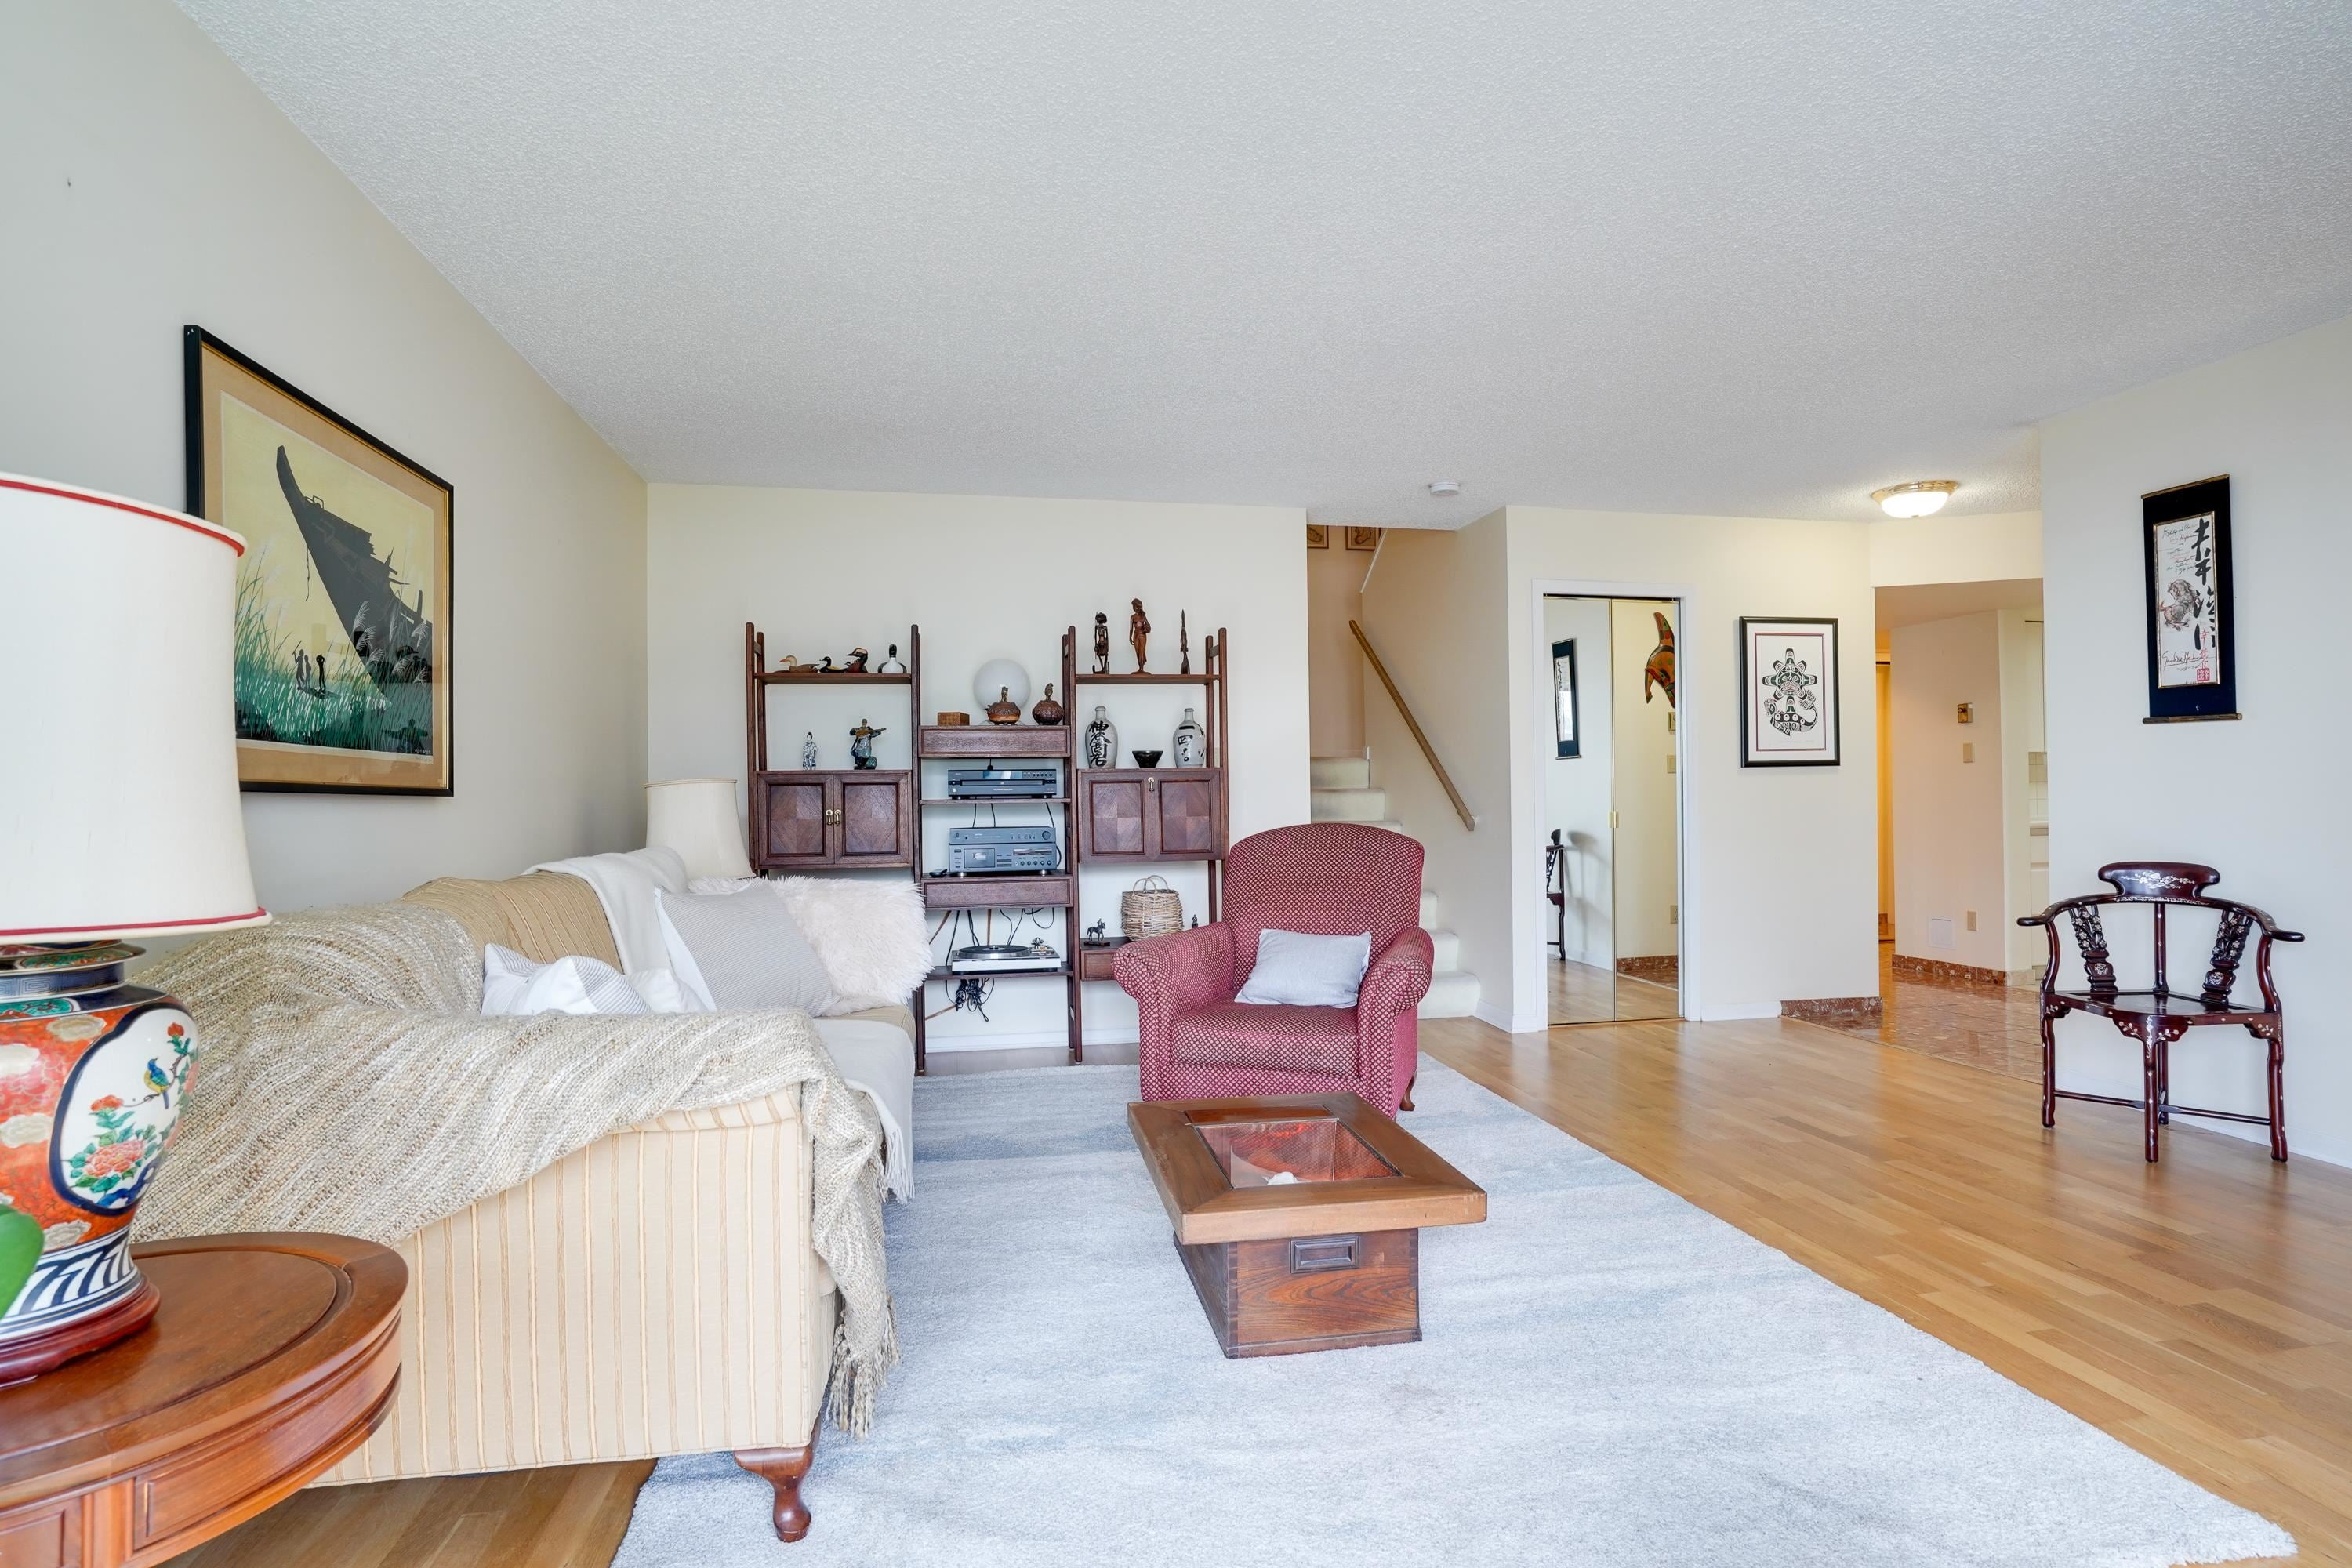 405 168 CHADWICK COURT - Lower Lonsdale Apartment/Condo for sale, 3 Bedrooms (R2619951) - #4